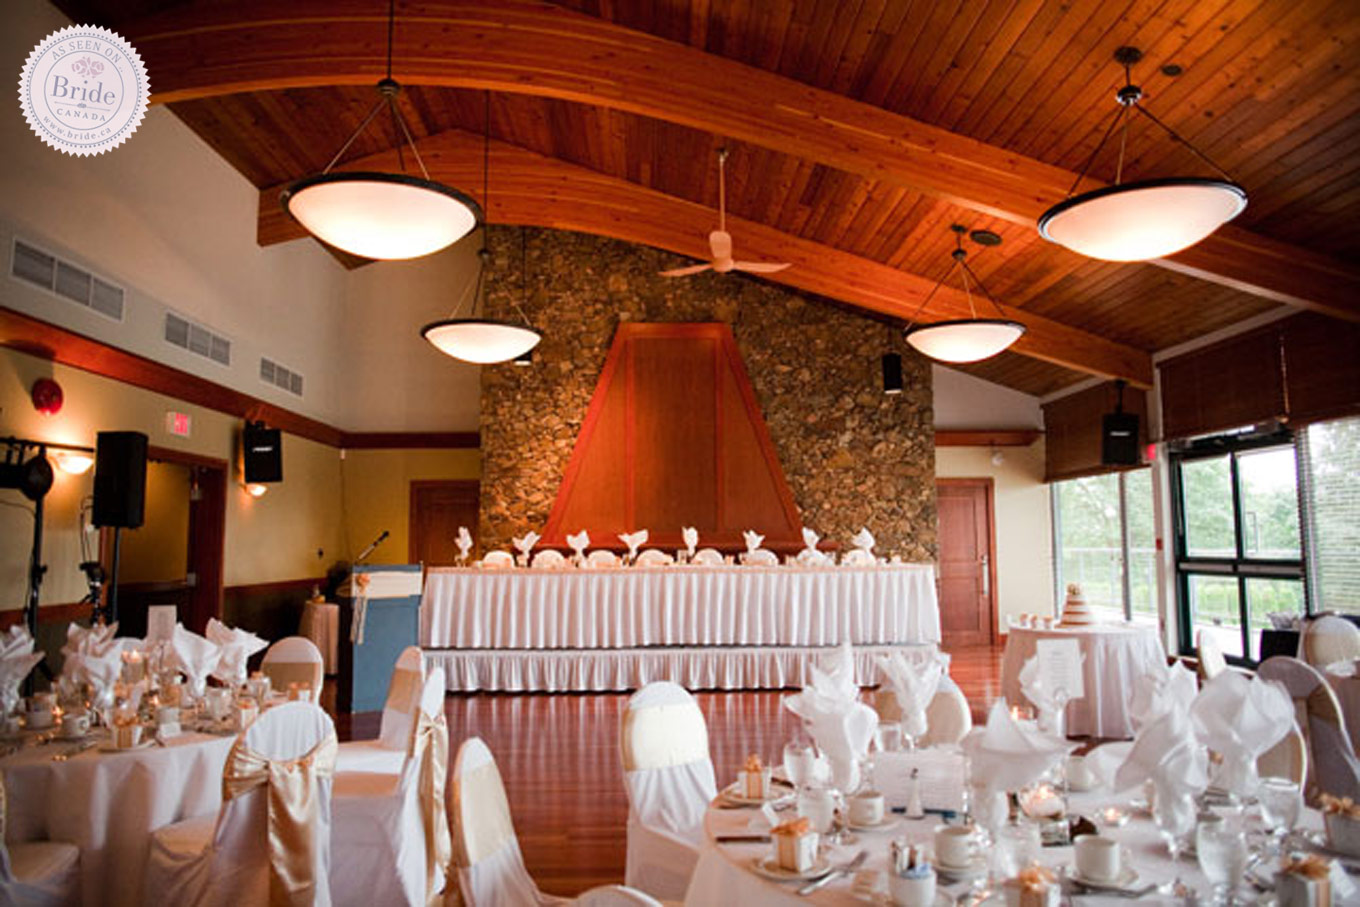 wedding chair covers kingston harmony ryze pedestal high candy green bride ca 7 great golf venues in greater vancouver